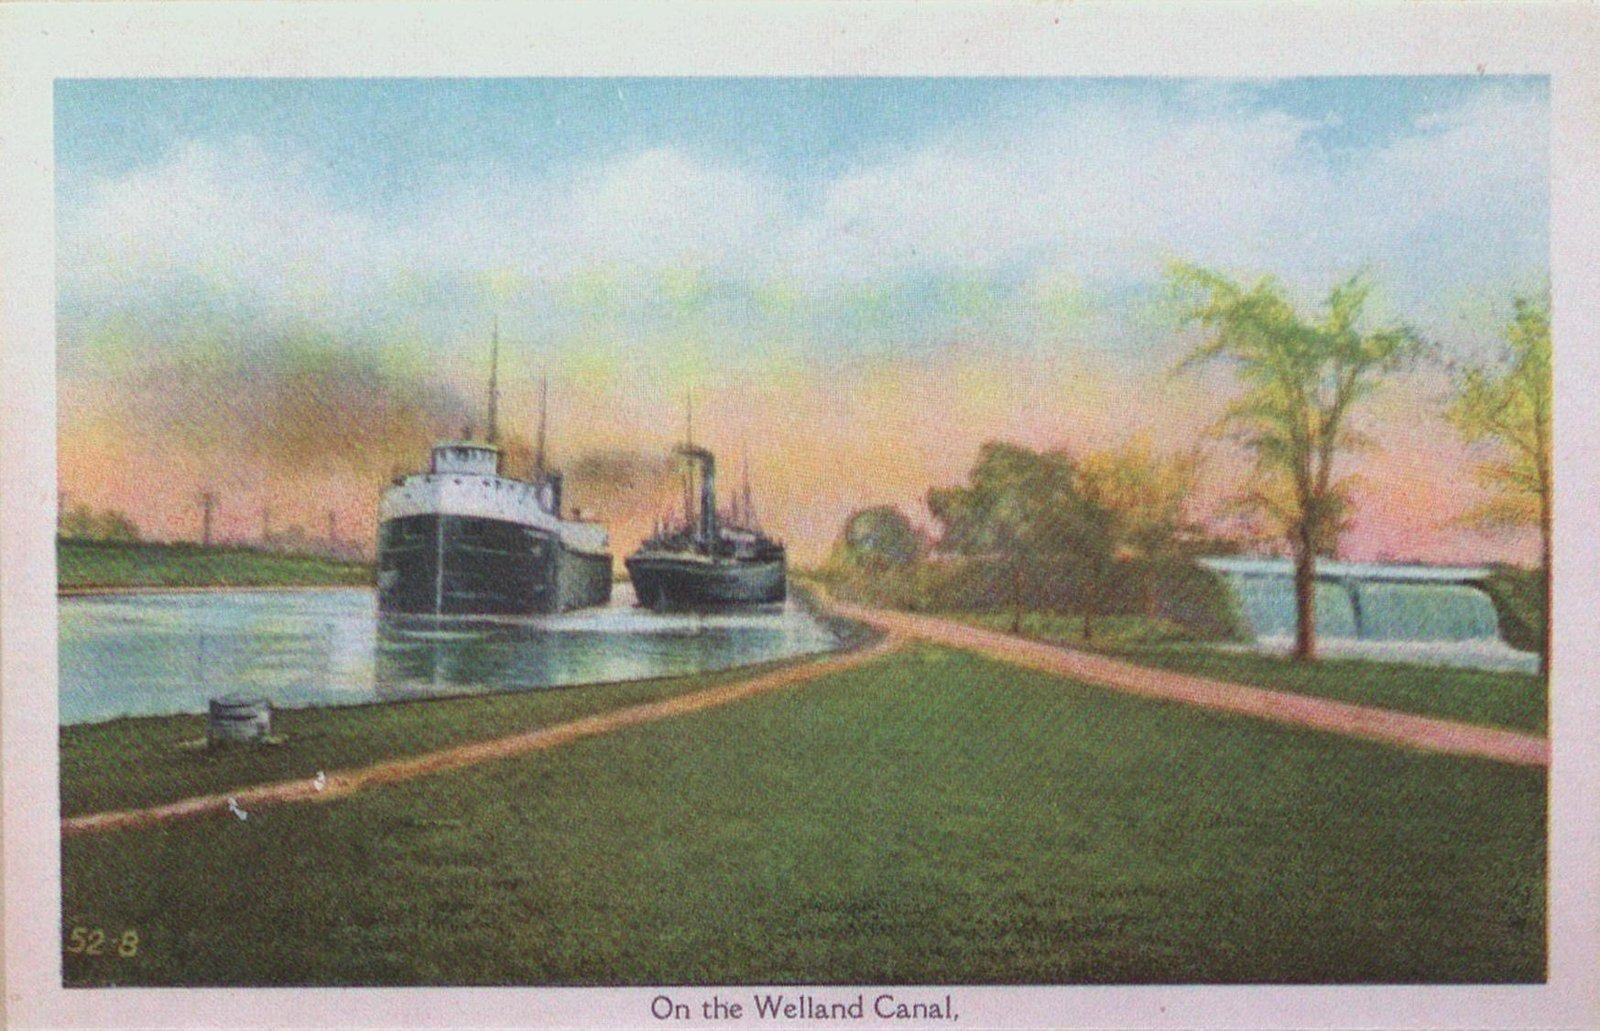 Souvenir view of St. Catharines & Port Dalhousie: On the Welland Canal